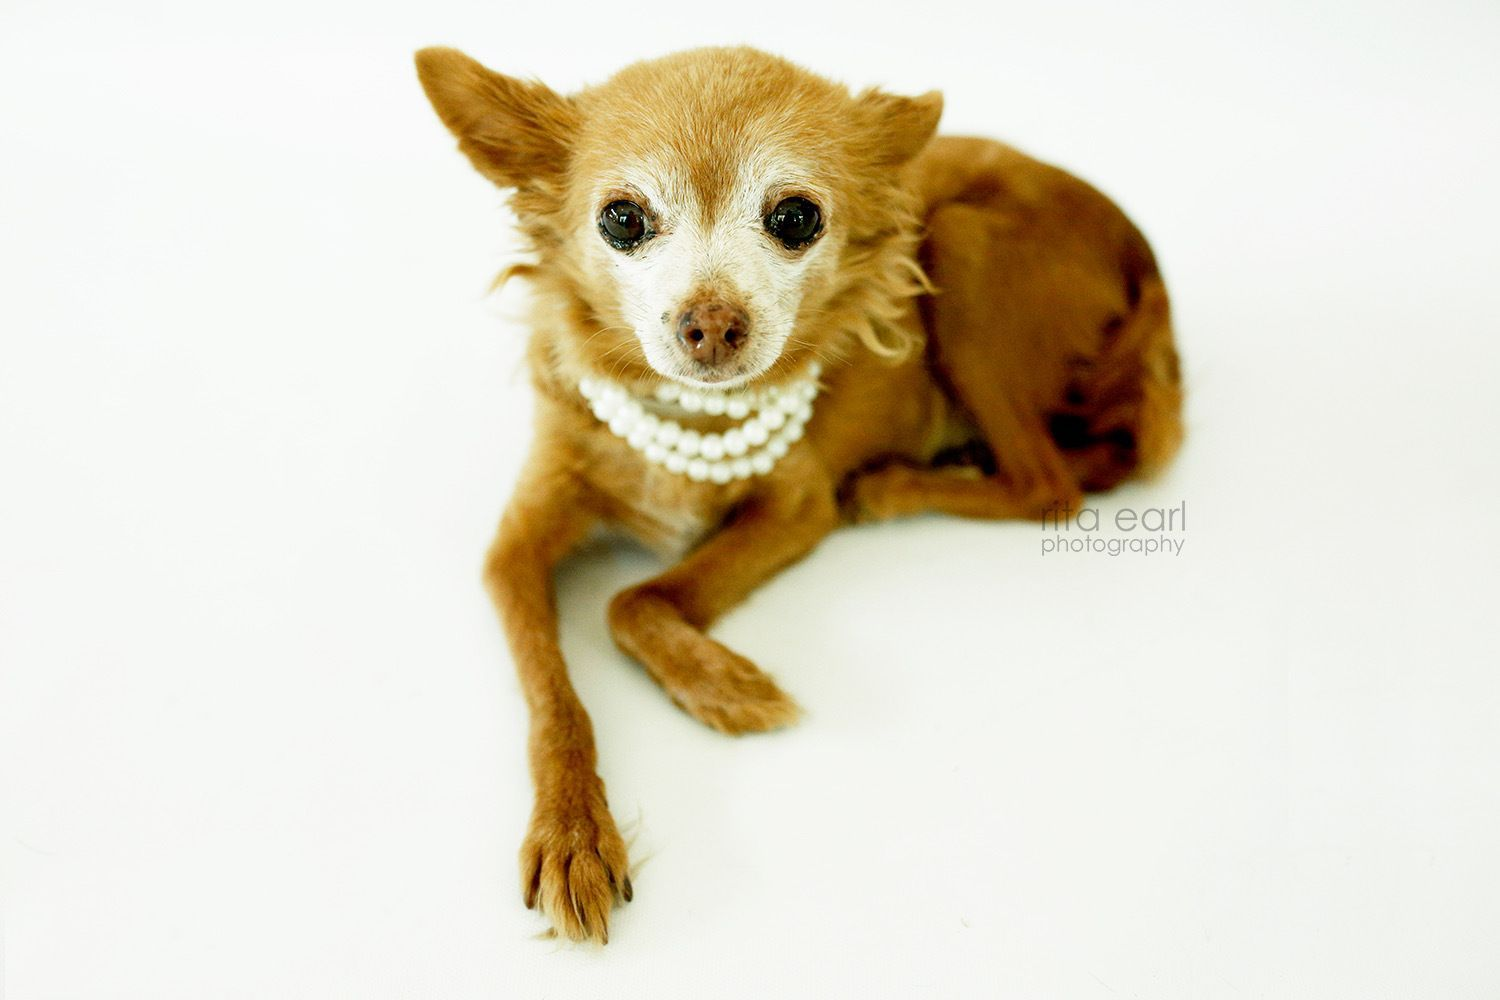 Hiccup Is An Adoptable Dog Papillon Chihuahua Mix Searching